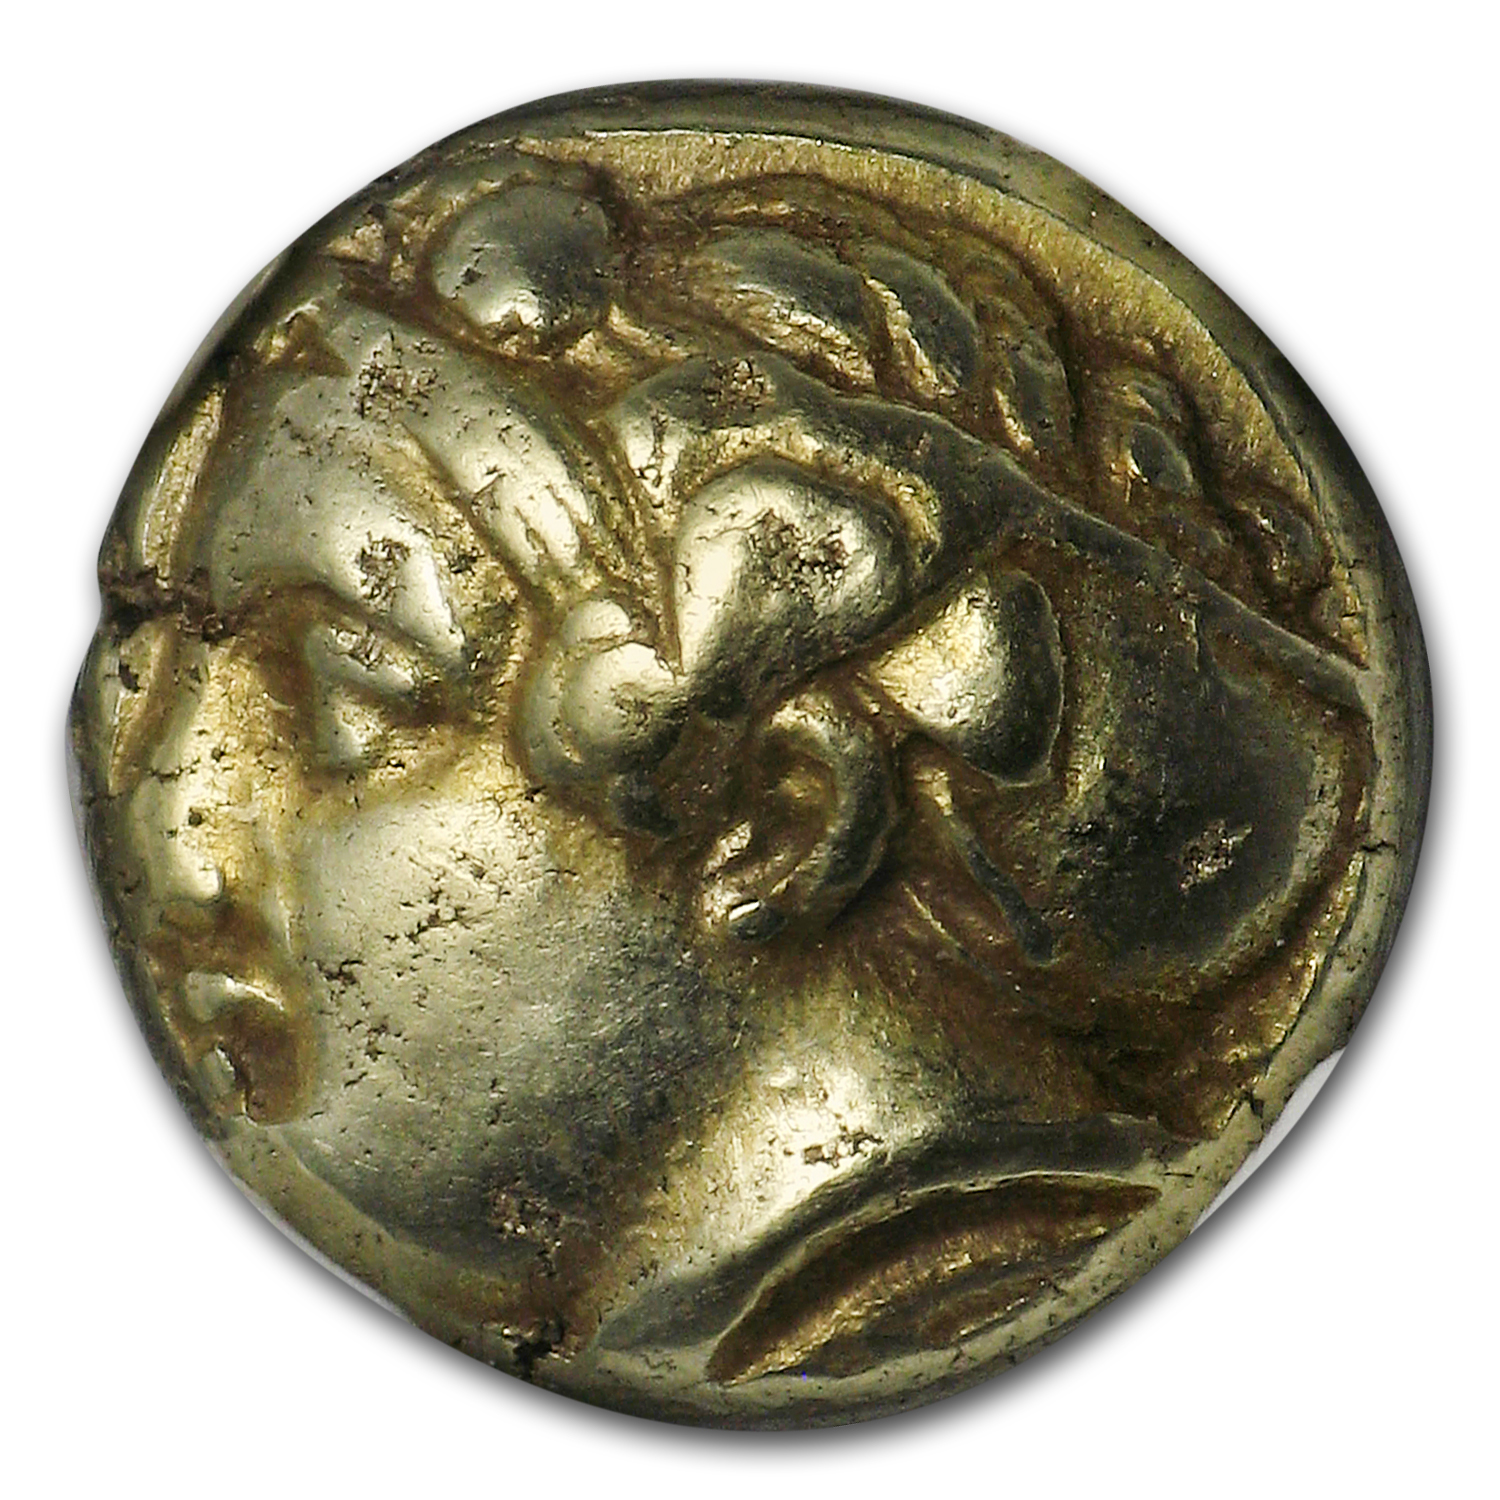 Ionia Phocaea EL Hecte Head of Demeter (387-326 BC) CH XF NGC